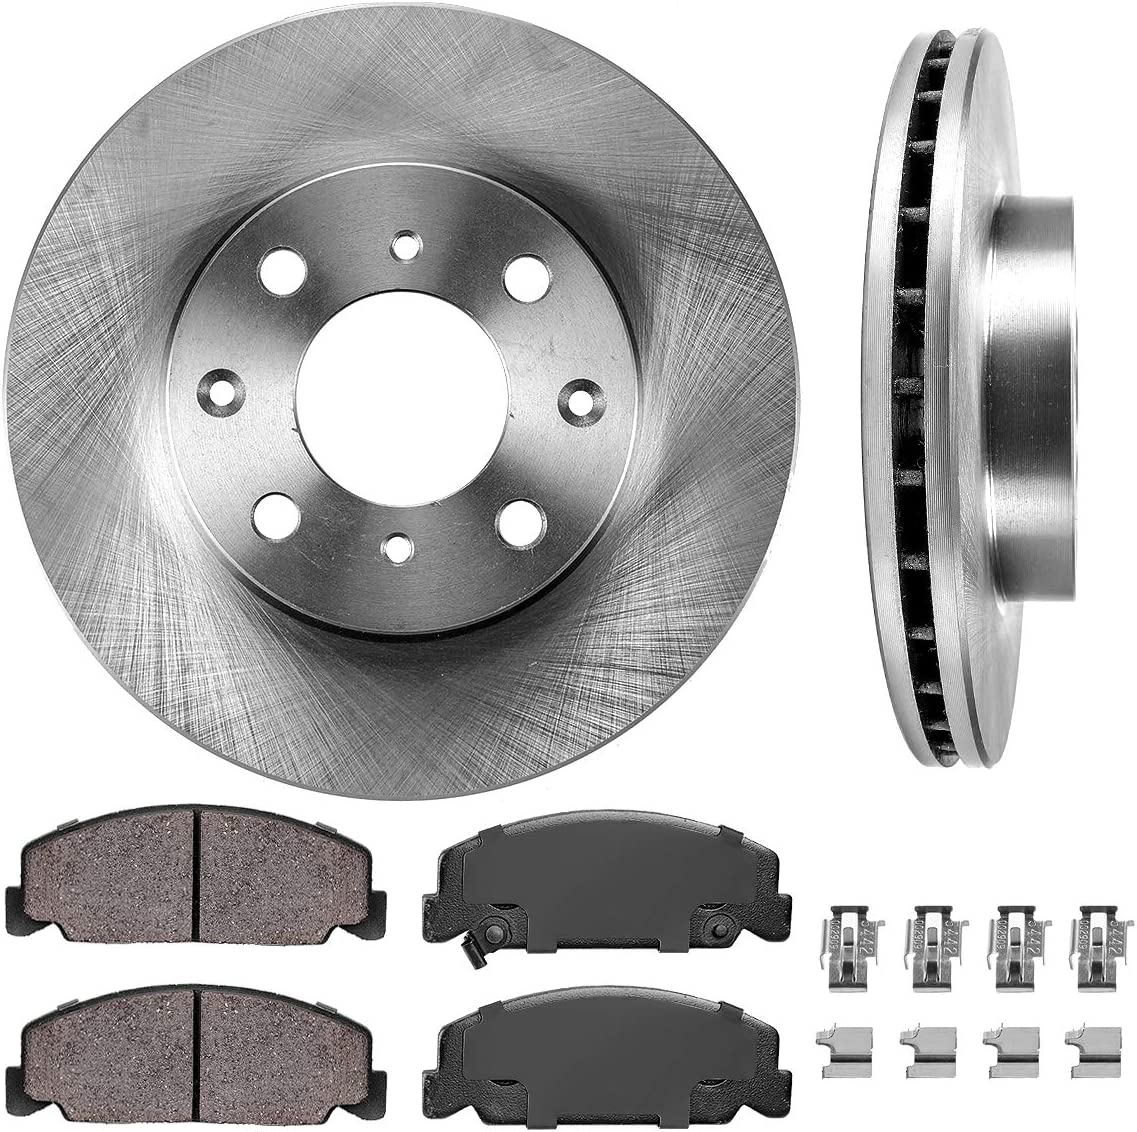 1999-2000 Honda Civic DX HX GX LX Front Brake Disc Rotors /& Ceramic Pads